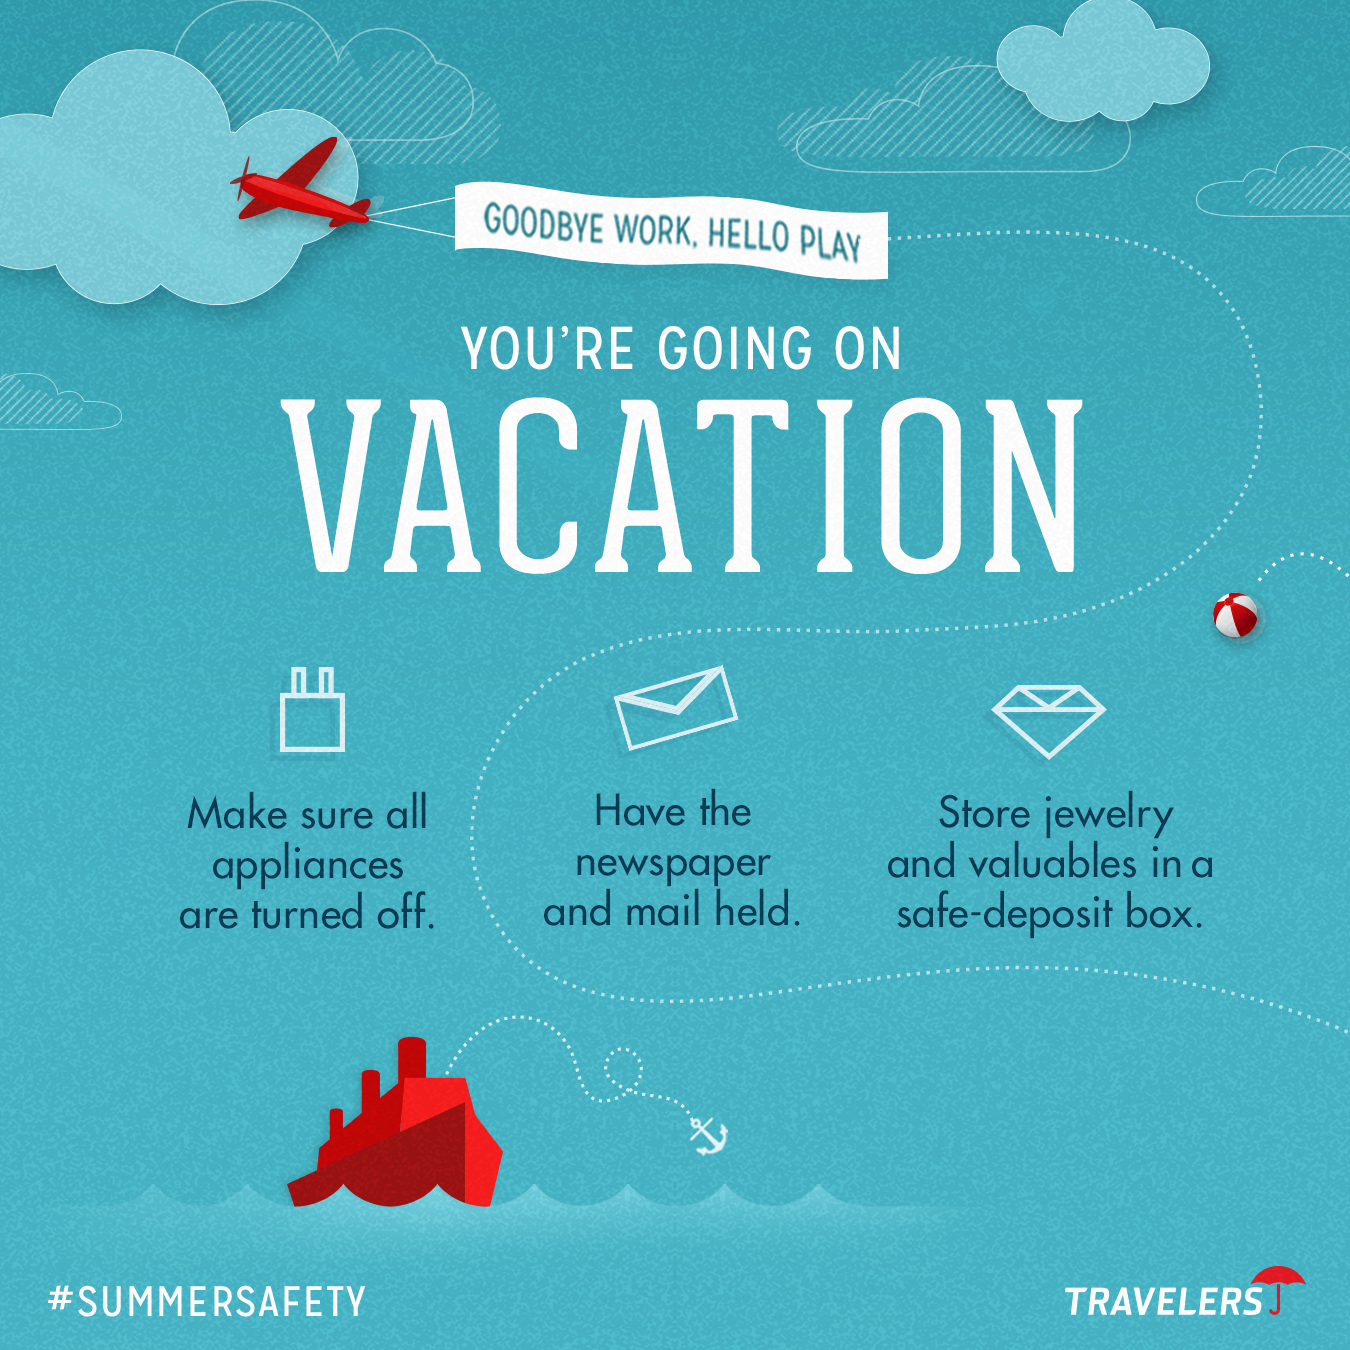 vacation checklist help your insurance customers avoid harm while